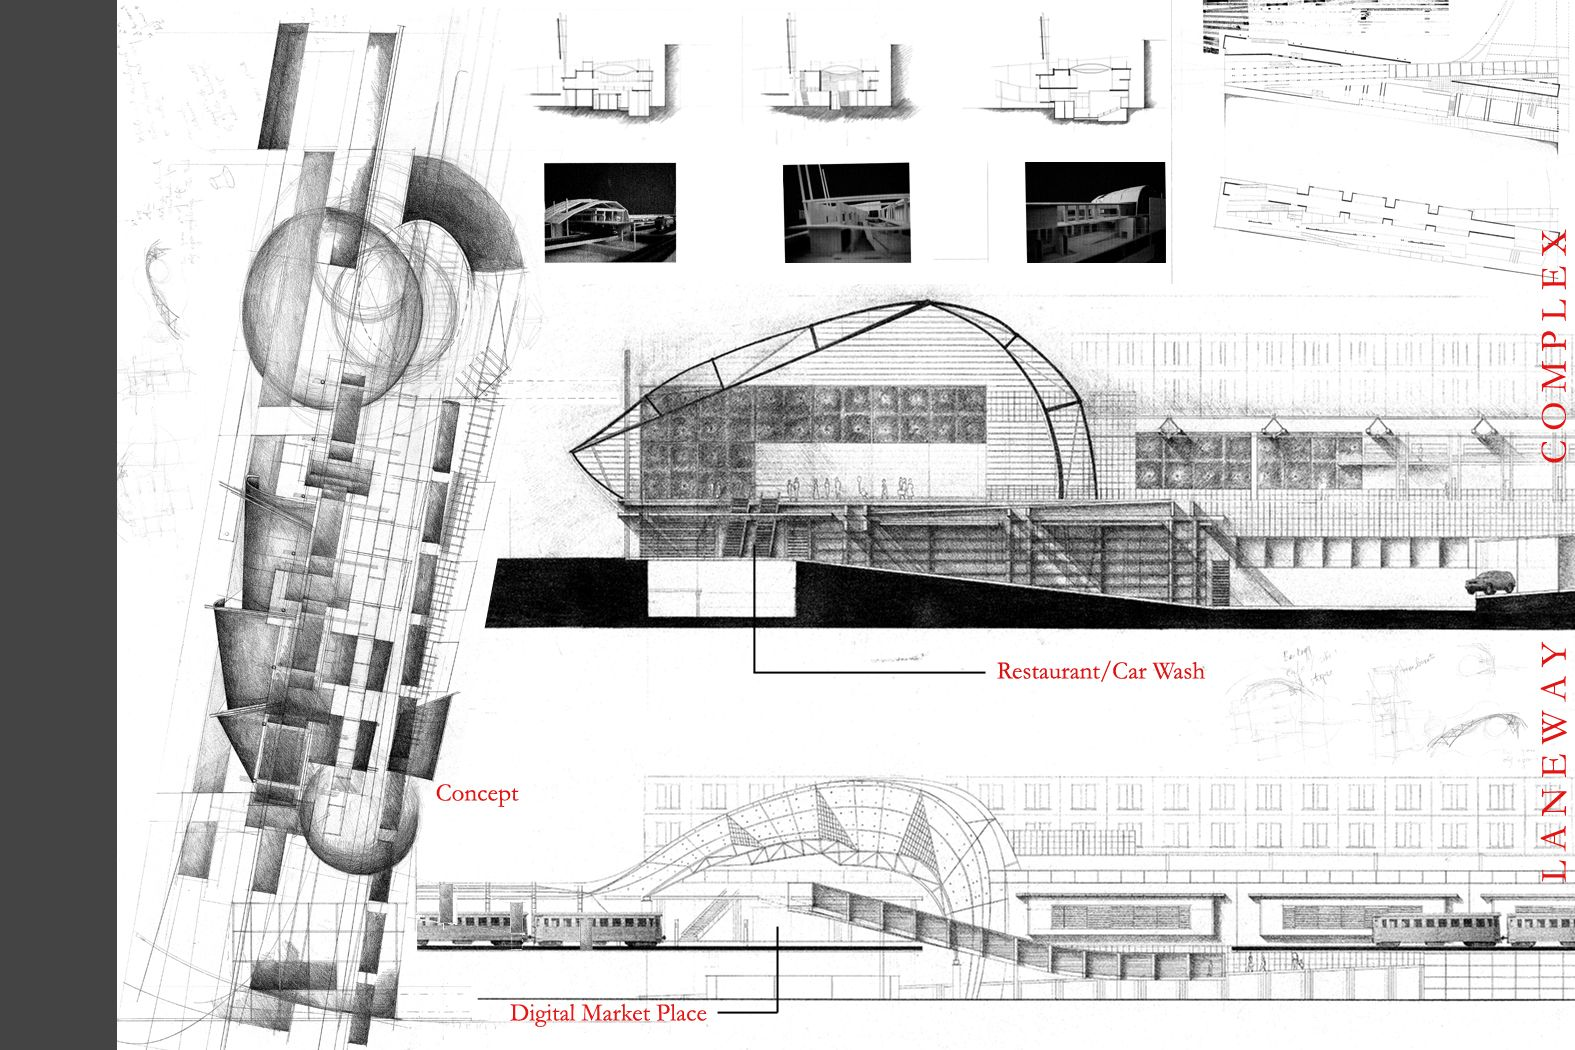 Architecture thesis design top content ghostwriter for hire online